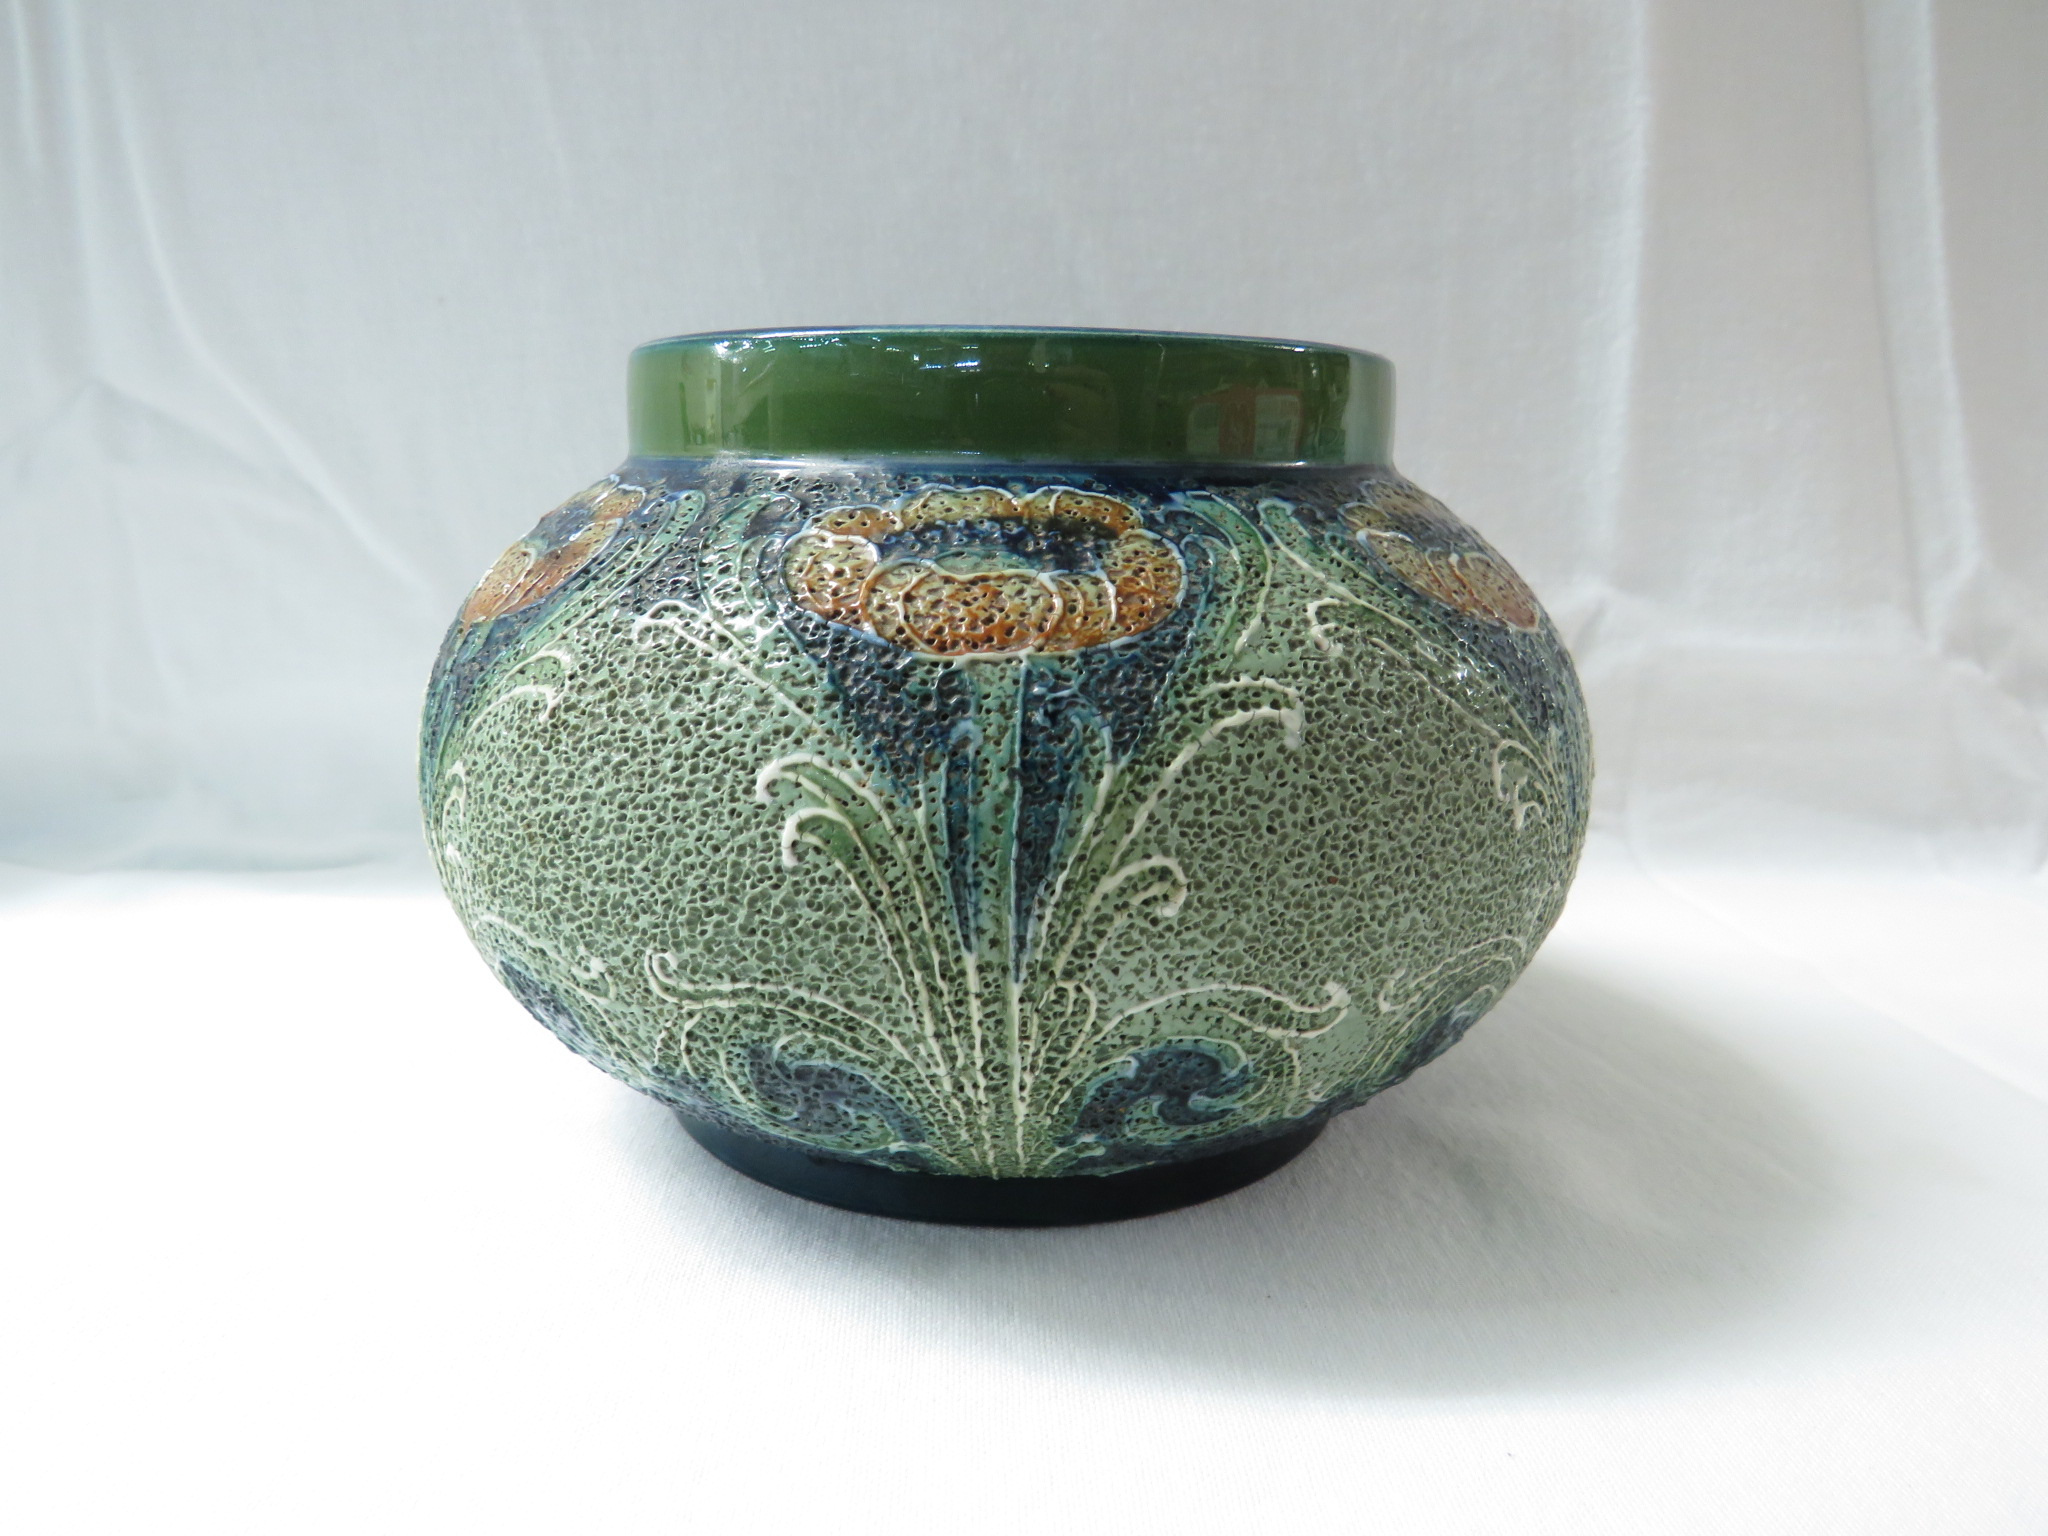 Lot 11 - Macintyre JM & Co squat pottery vase, blue and green textured glaze with a repeating pattern of